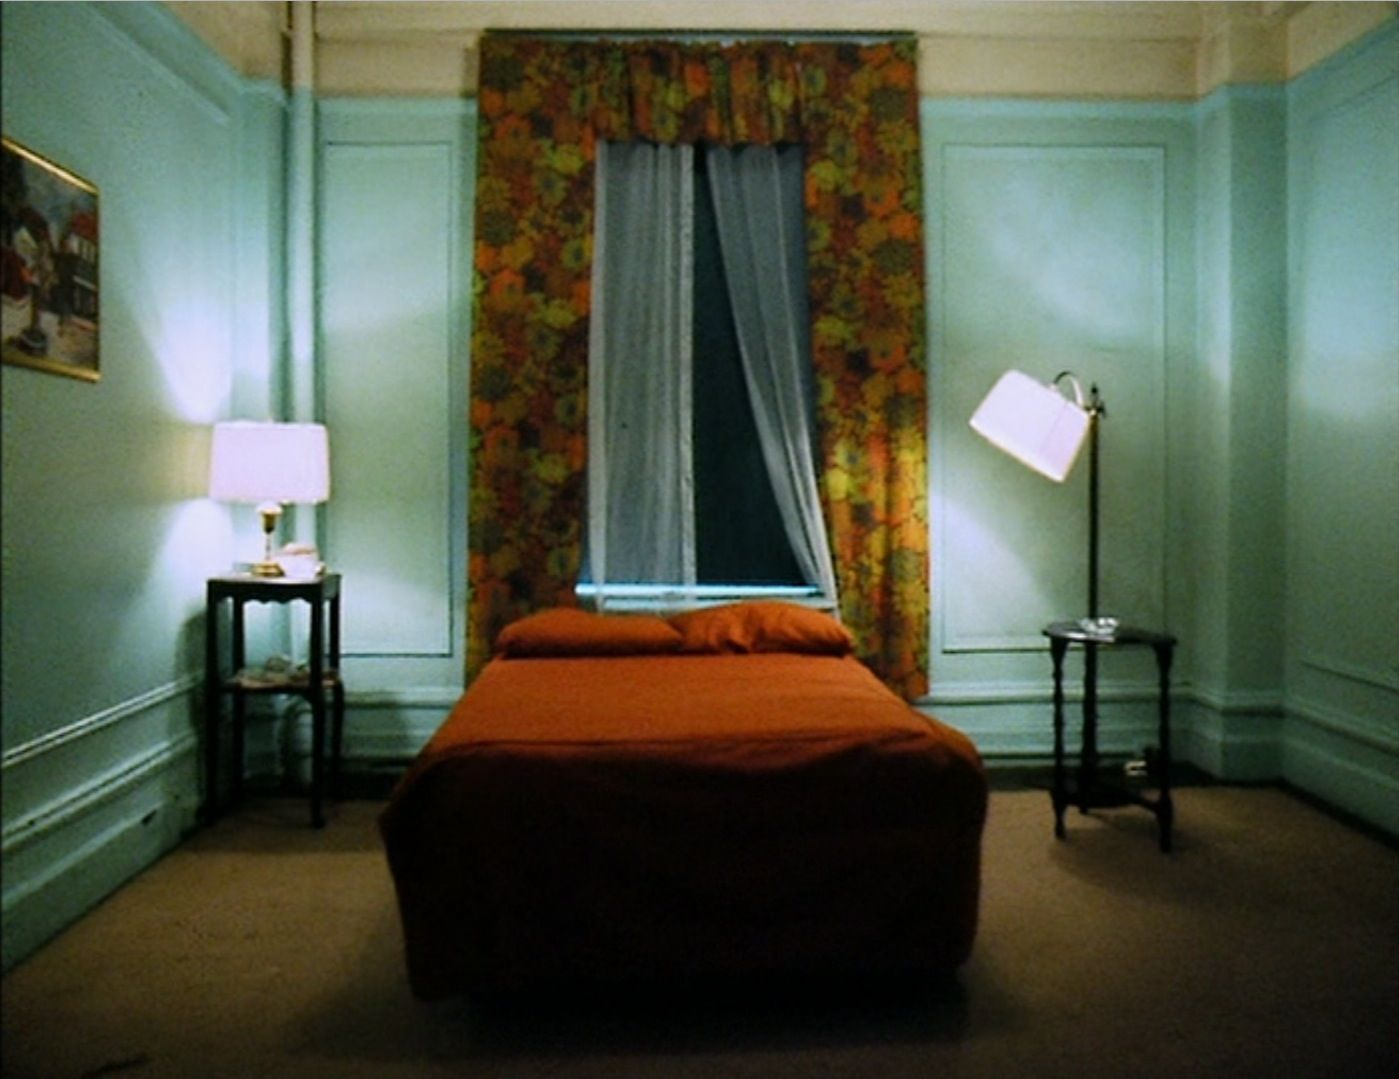 La Chambre Verte Truffaut Streaming Pin By Polygrinder On Old Rooms Hotel Interiors Room Cinema